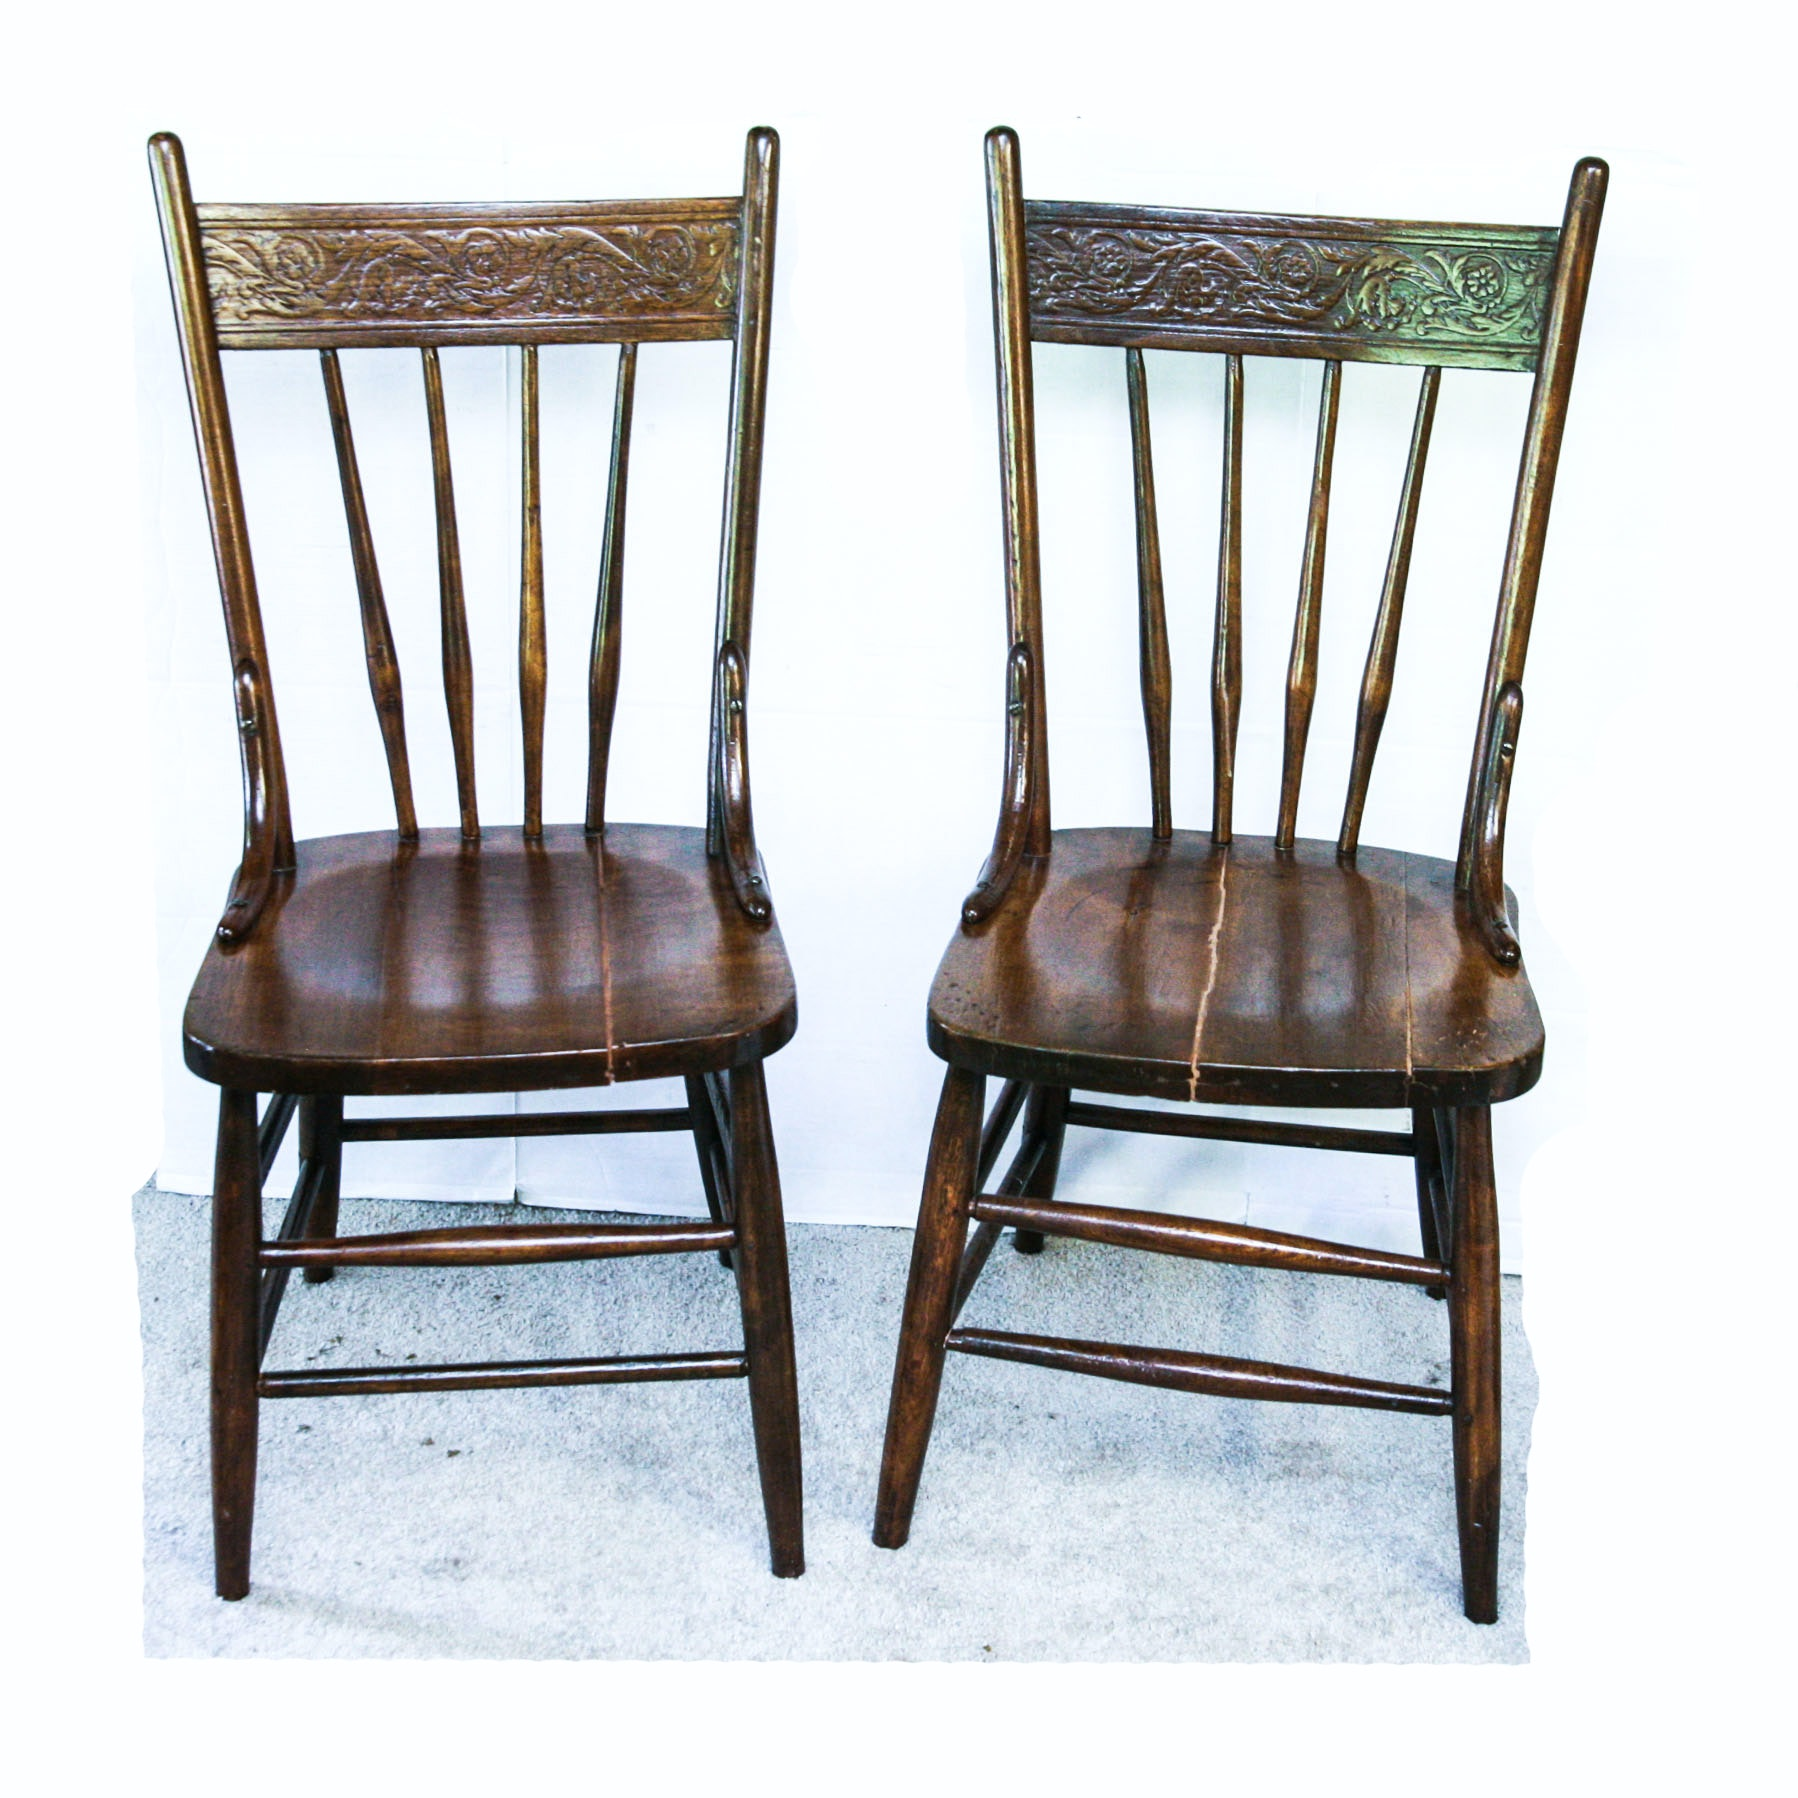 Two Circa 1900 Antique Wood Pressed Back Spindle Dining Chairs ...  sc 1 st  EBTH.com & Two Circa 1900 Antique Wood Pressed Back Spindle Dining Chairs : EBTH